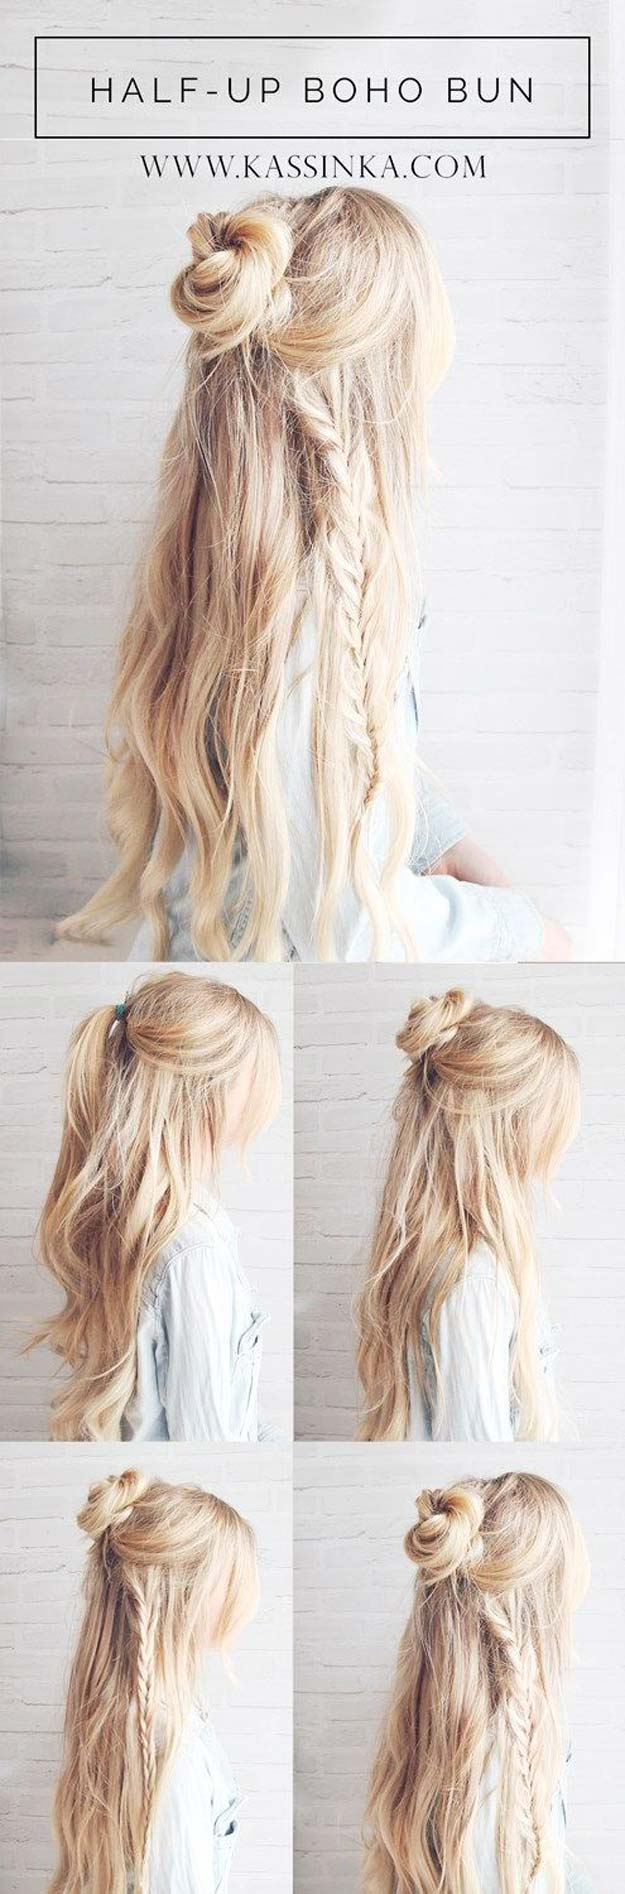 Awesome Hairstyle For Long Hair Pictures - Styles & Ideas 2018 ...